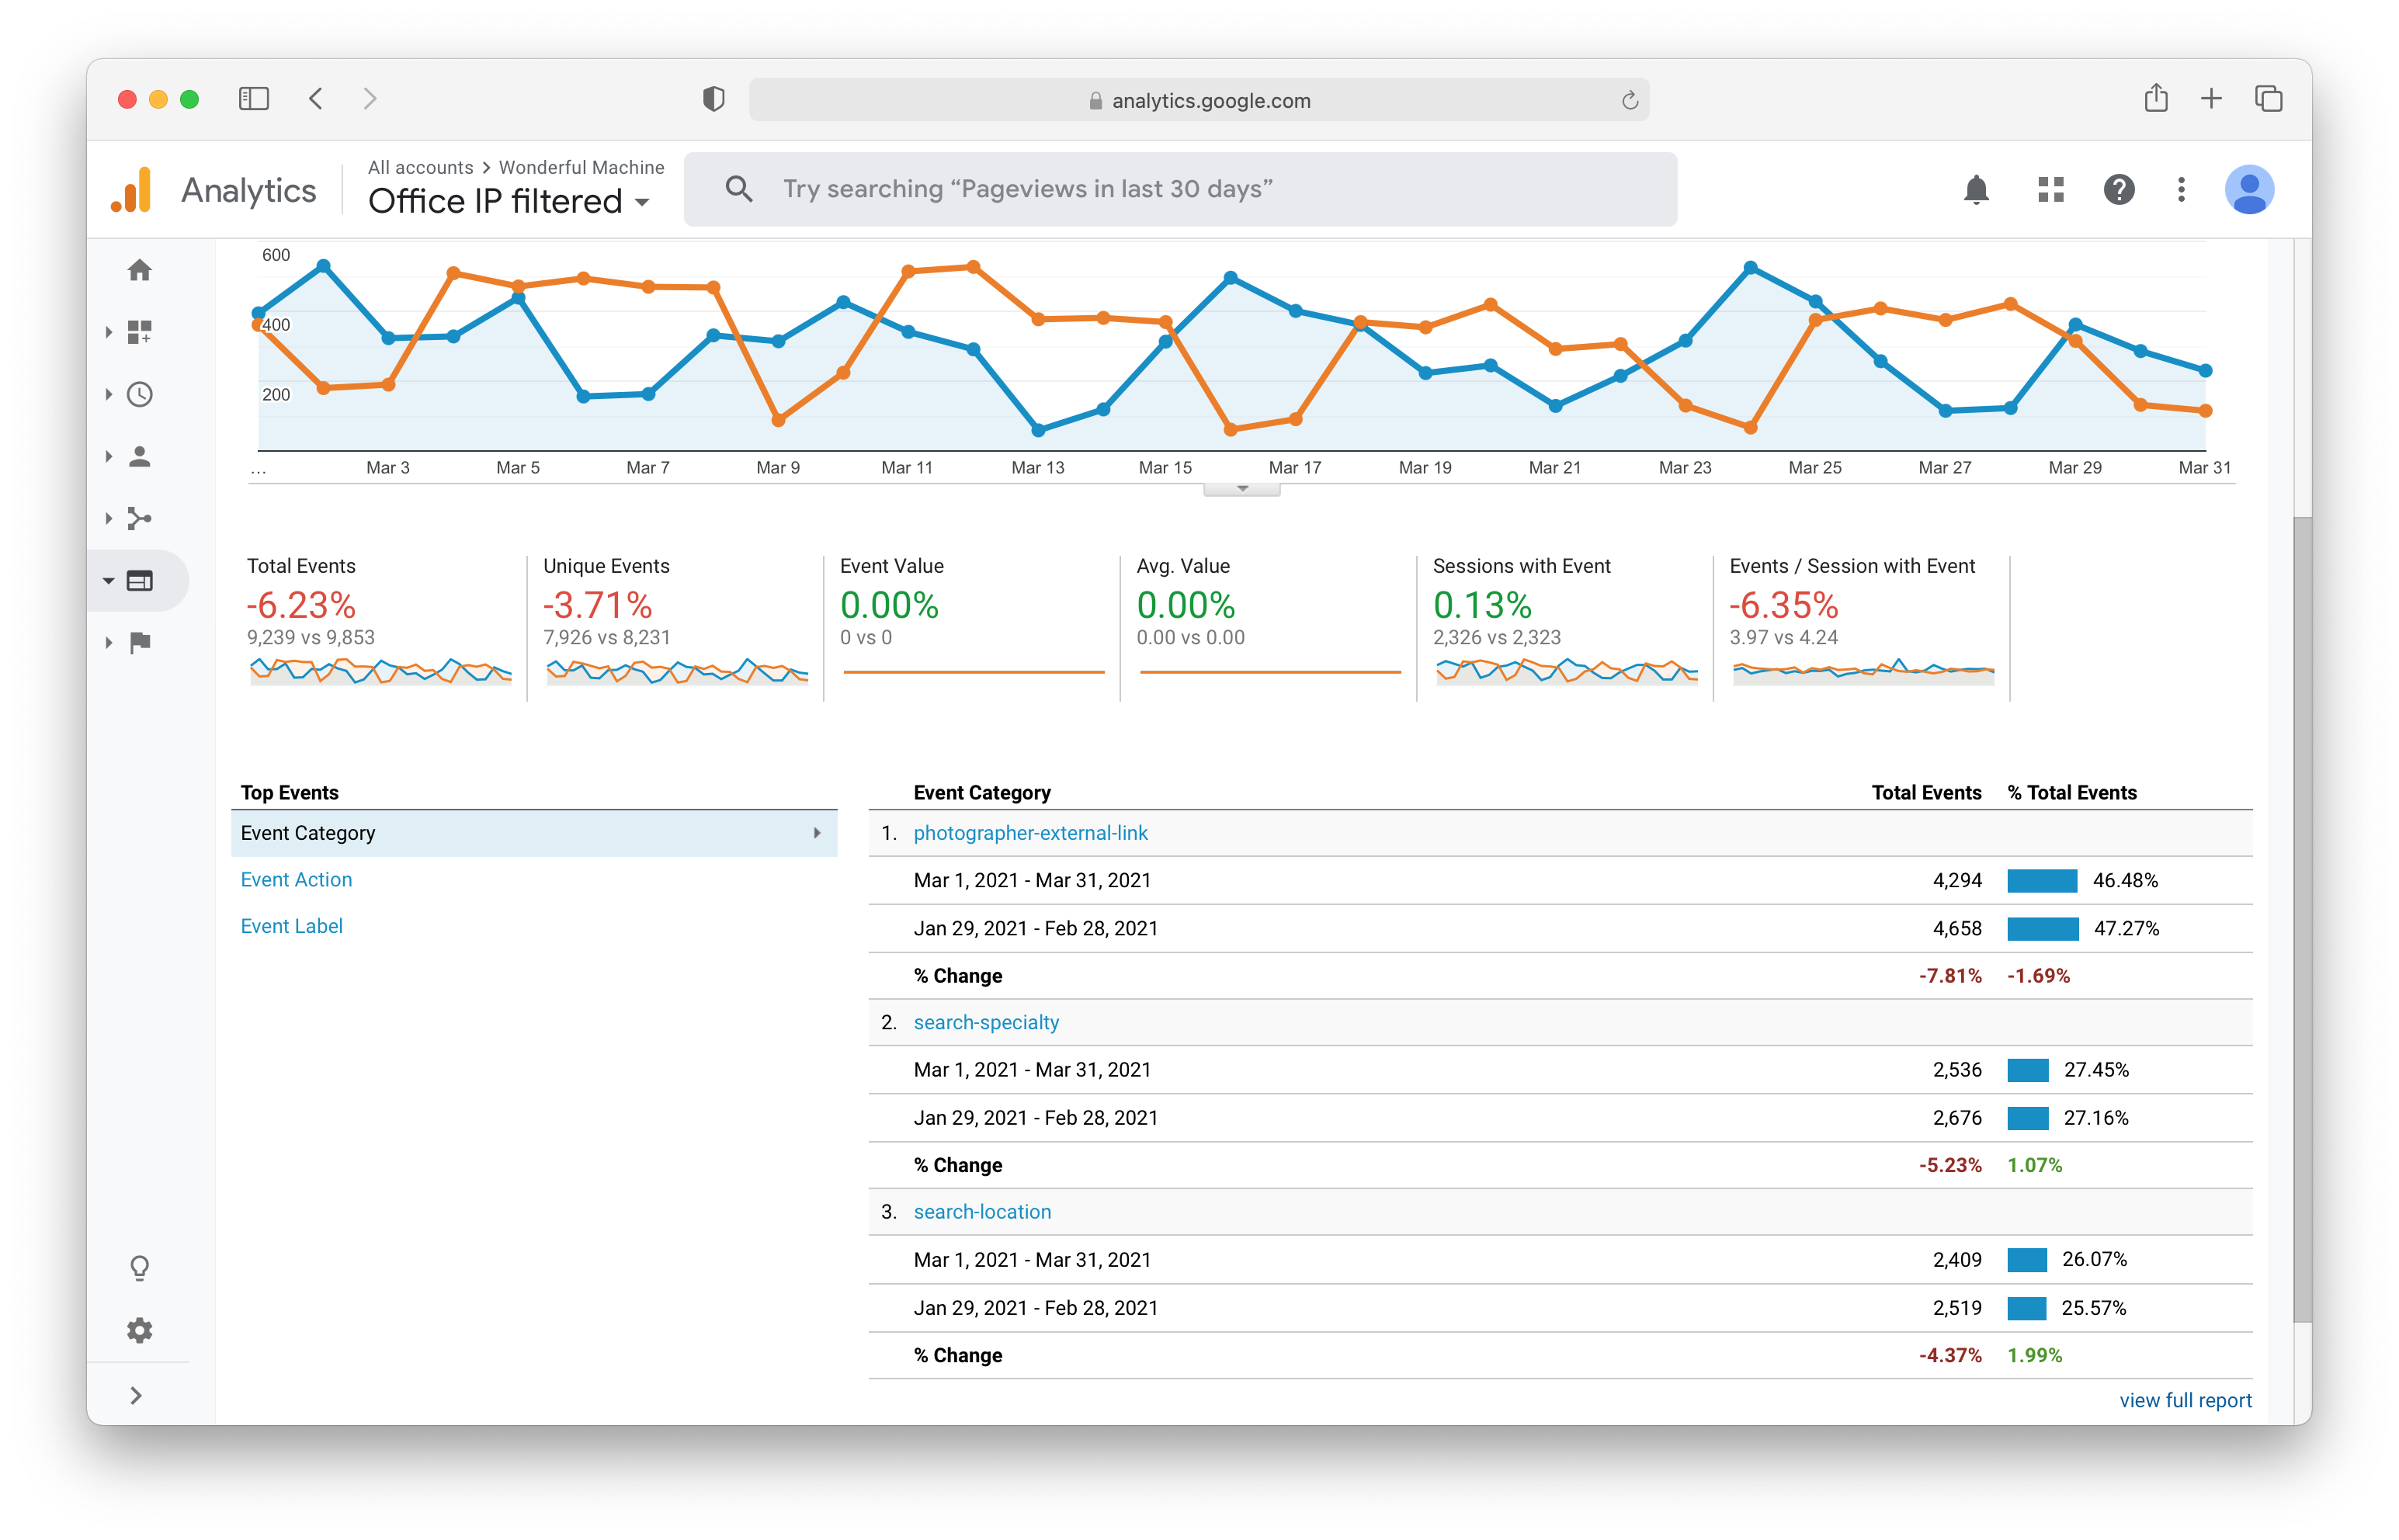 Google Analytics Site Events for Wonderful Machine dot com's site during March 2021